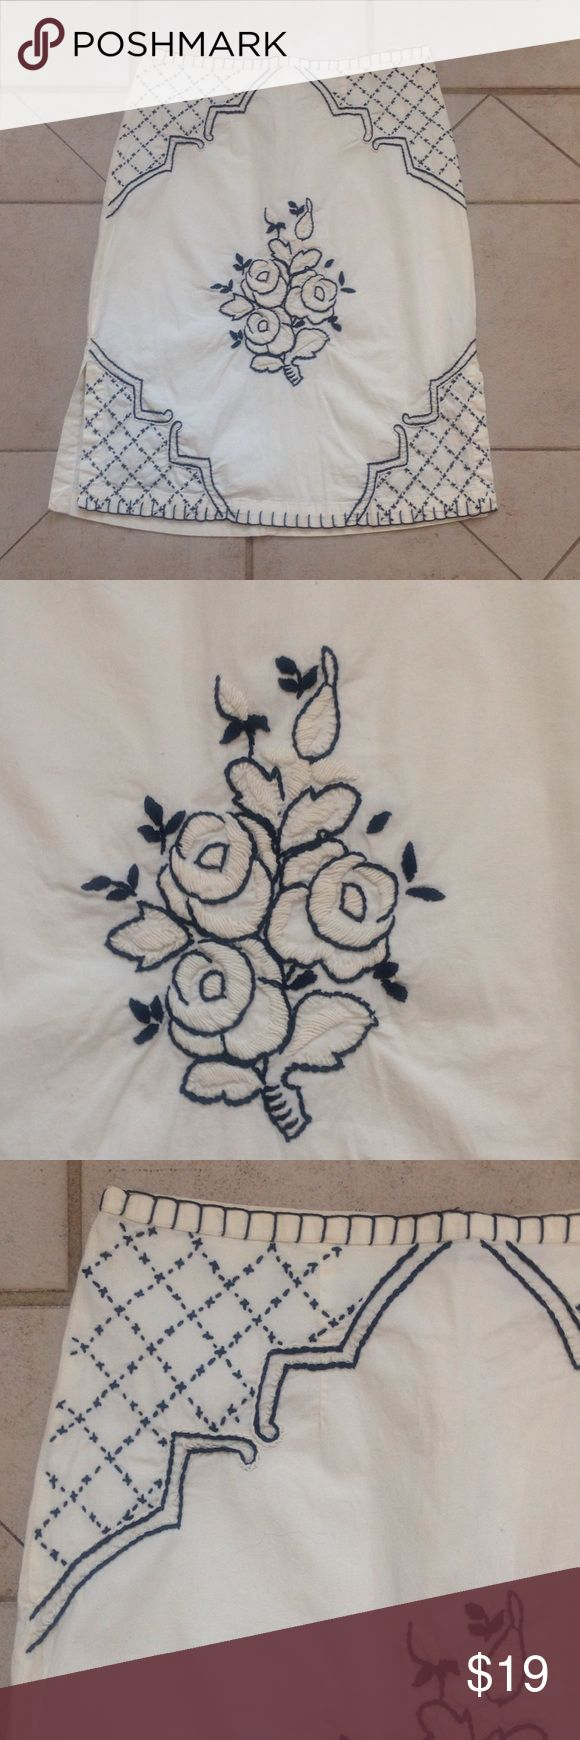 TRUE GRIT Embroidered Skirt   Sz M GREAT BUY! Describes this Ivory/Black Cotton/Lycra TRUE GRIT Skirt that measures 15 inches across the waist; is 18 inches across the hips; and is22 inches in overall length. true grit Skirts Midi